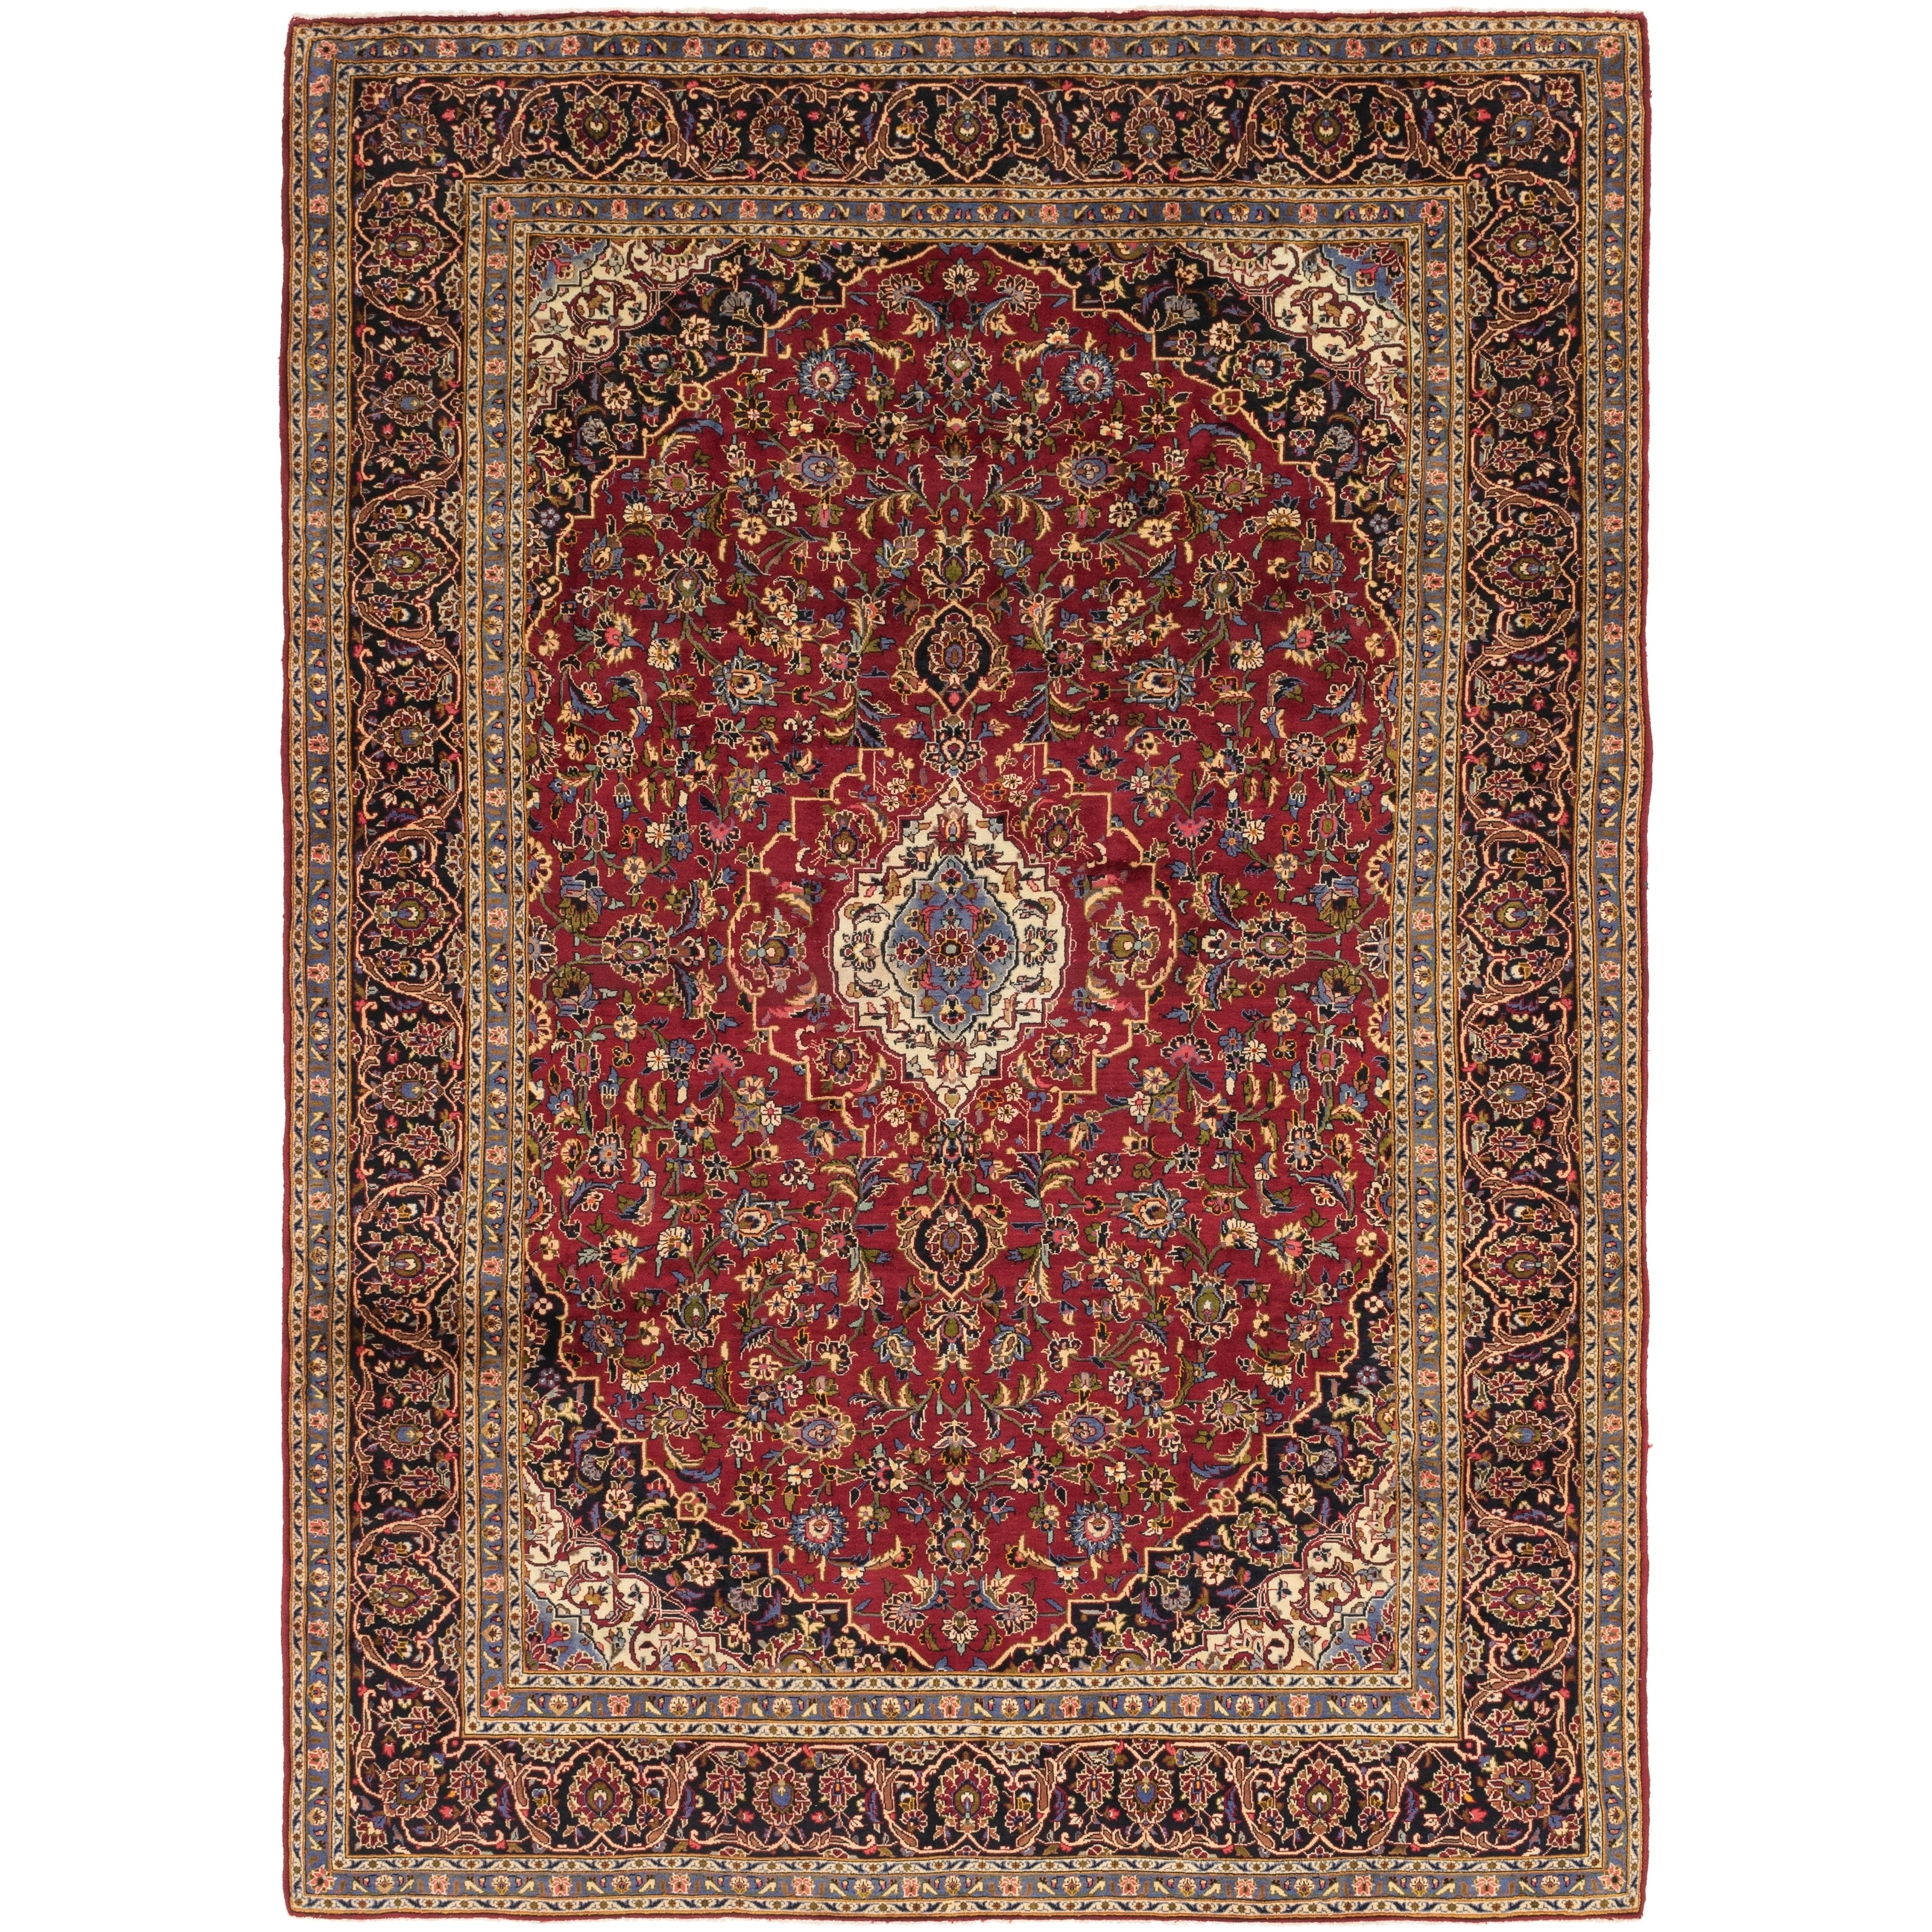 Hand Knotted Kashan Wool Area Rug - 9 2 x 13 2 (Red - 9 2 x 13 2)